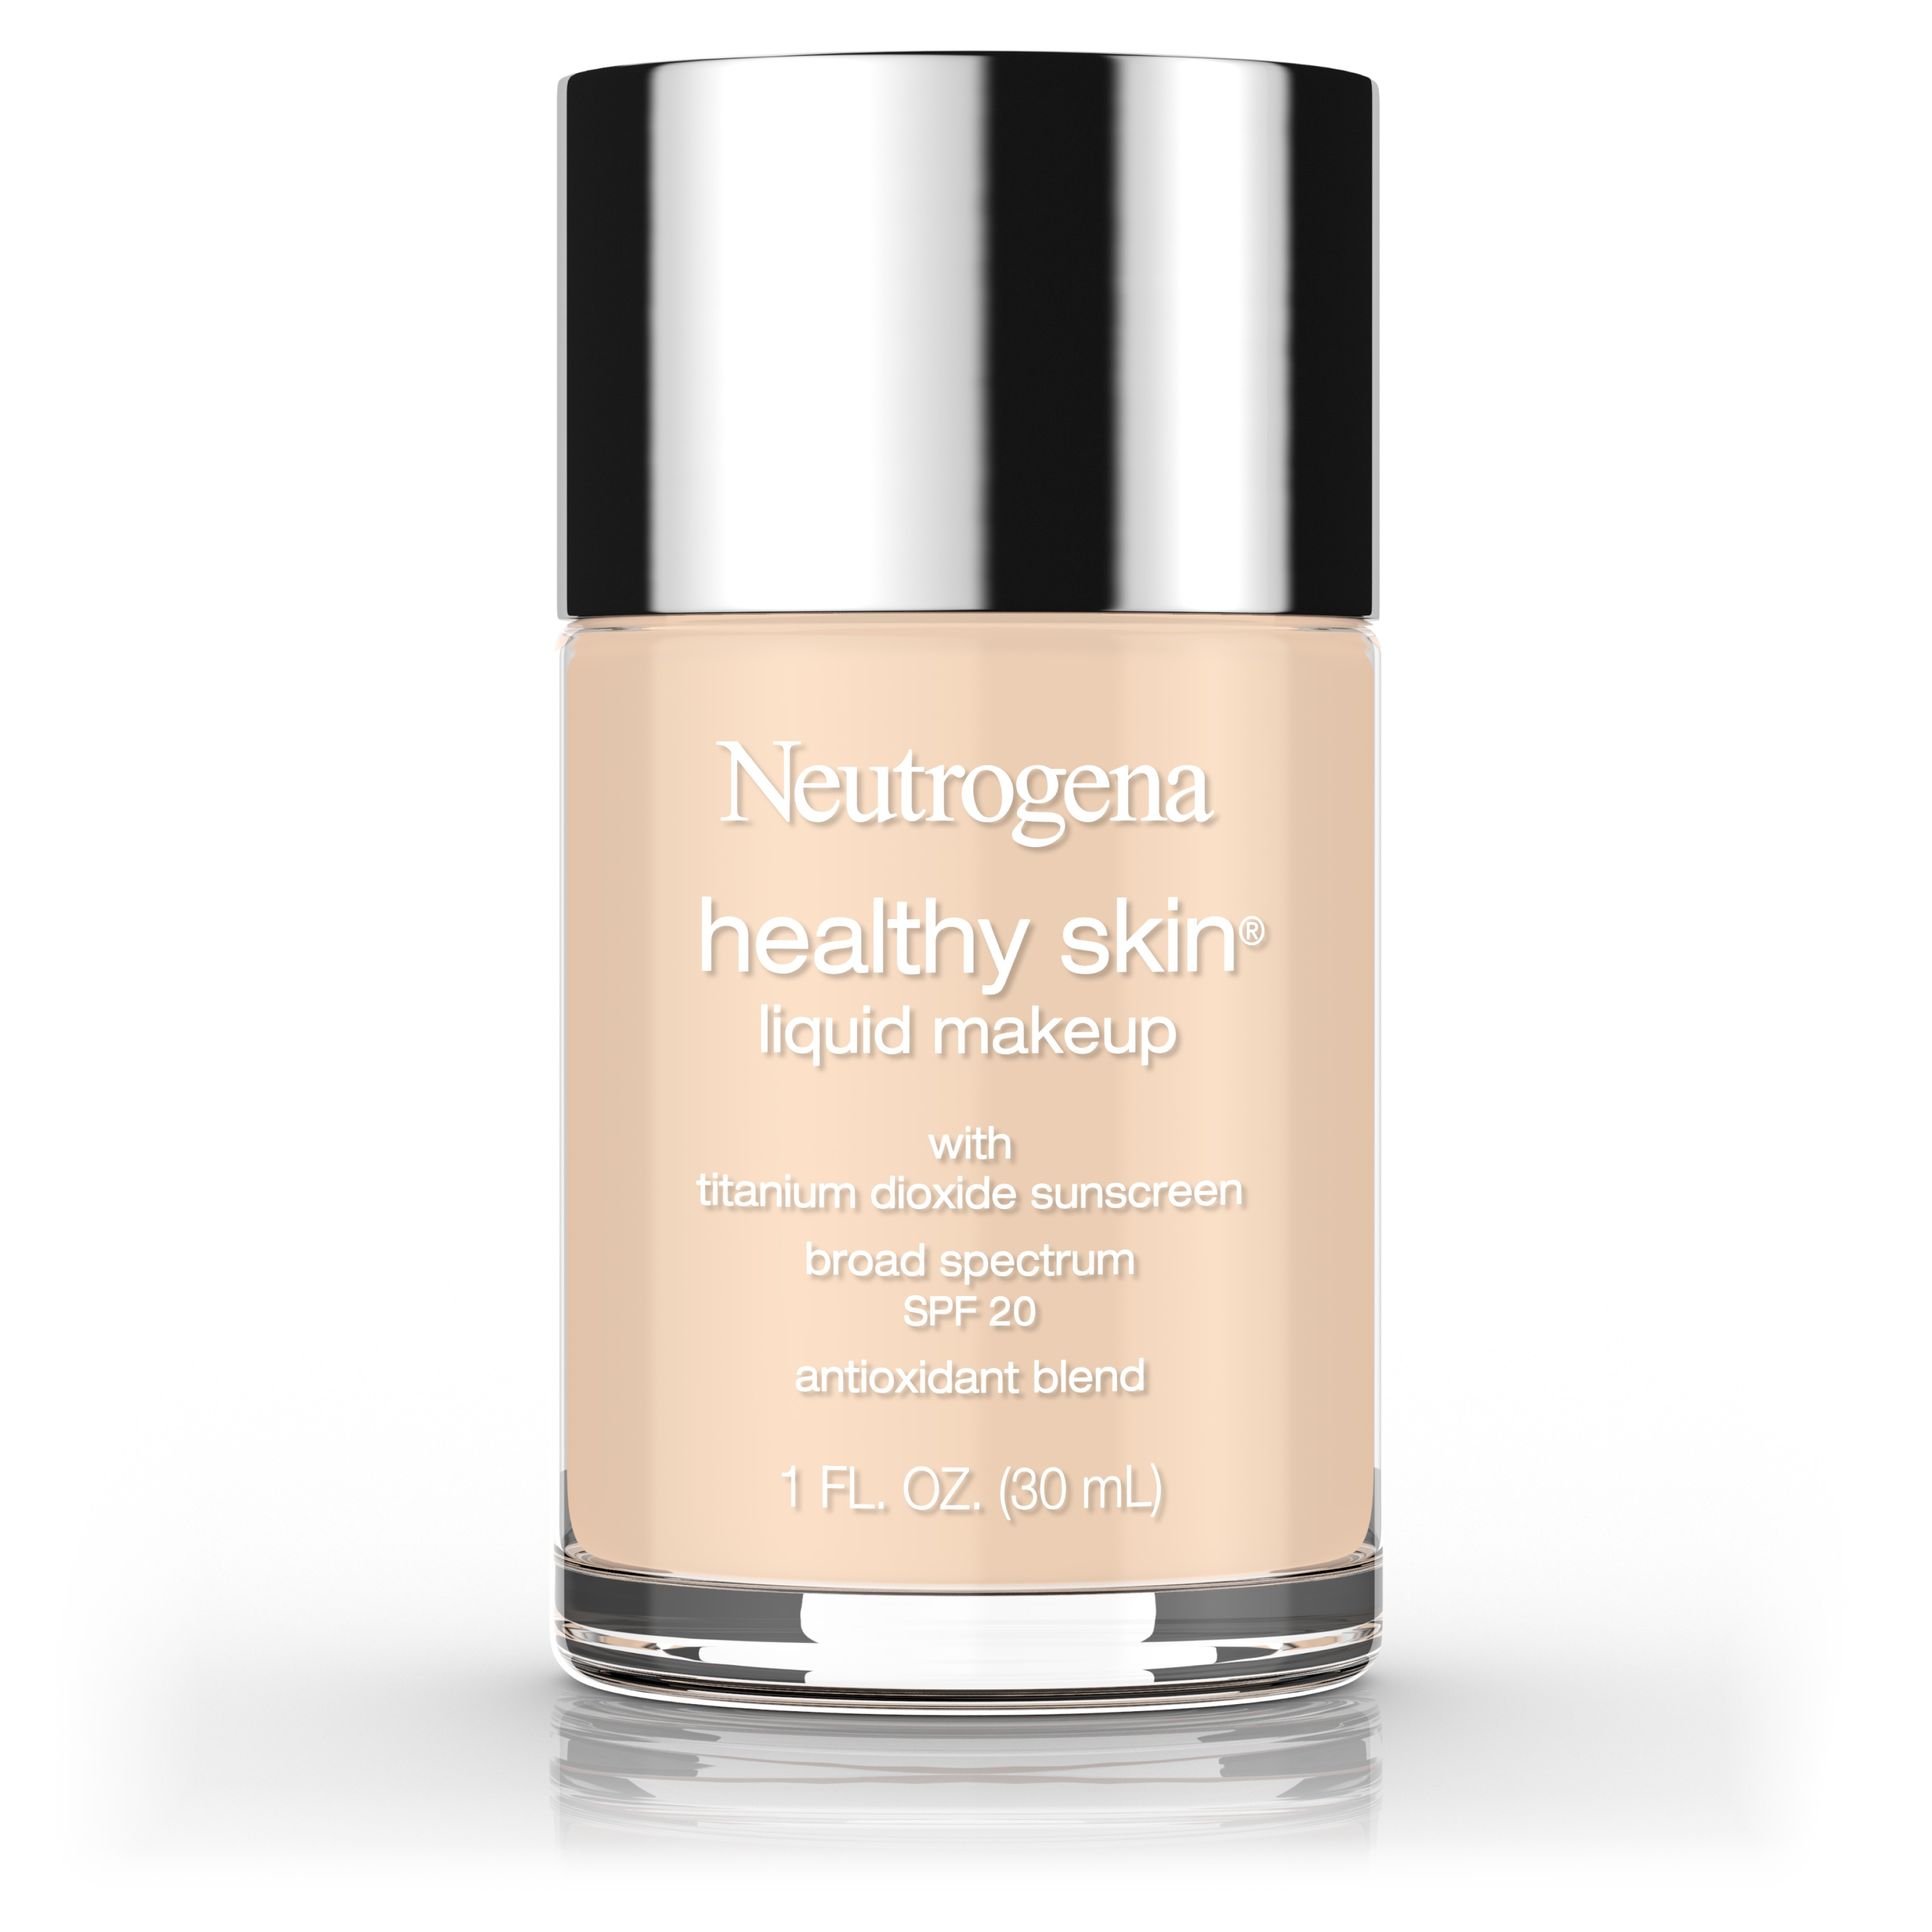 Neutrogena Healthy Skin Liquid Makeup Broad Spectrum SPF 20, 30 Buff, 1 Oz. - Walmart.com